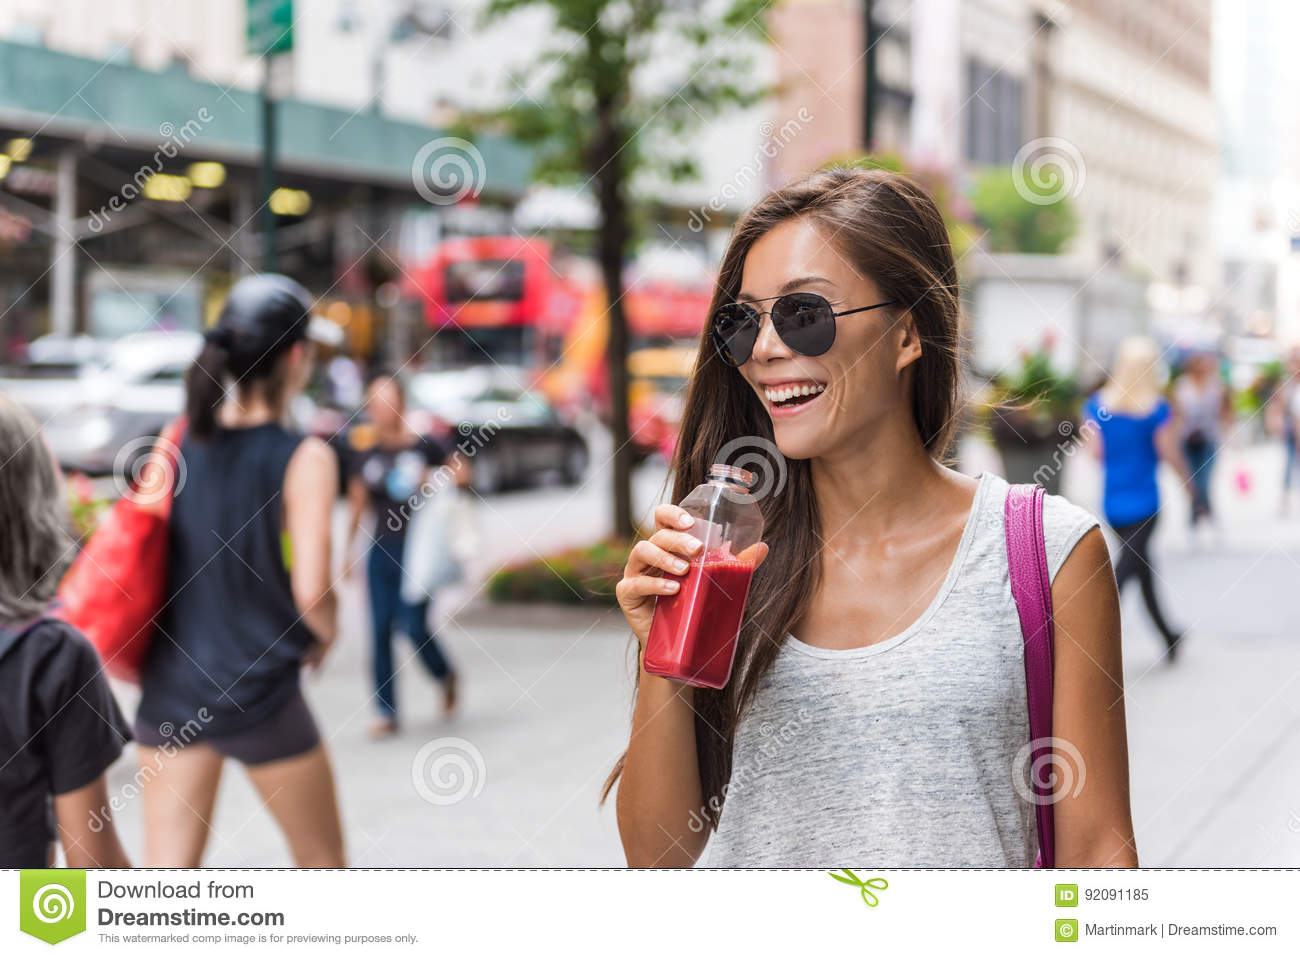 City lifestyle woman drinking healthy fruit juice